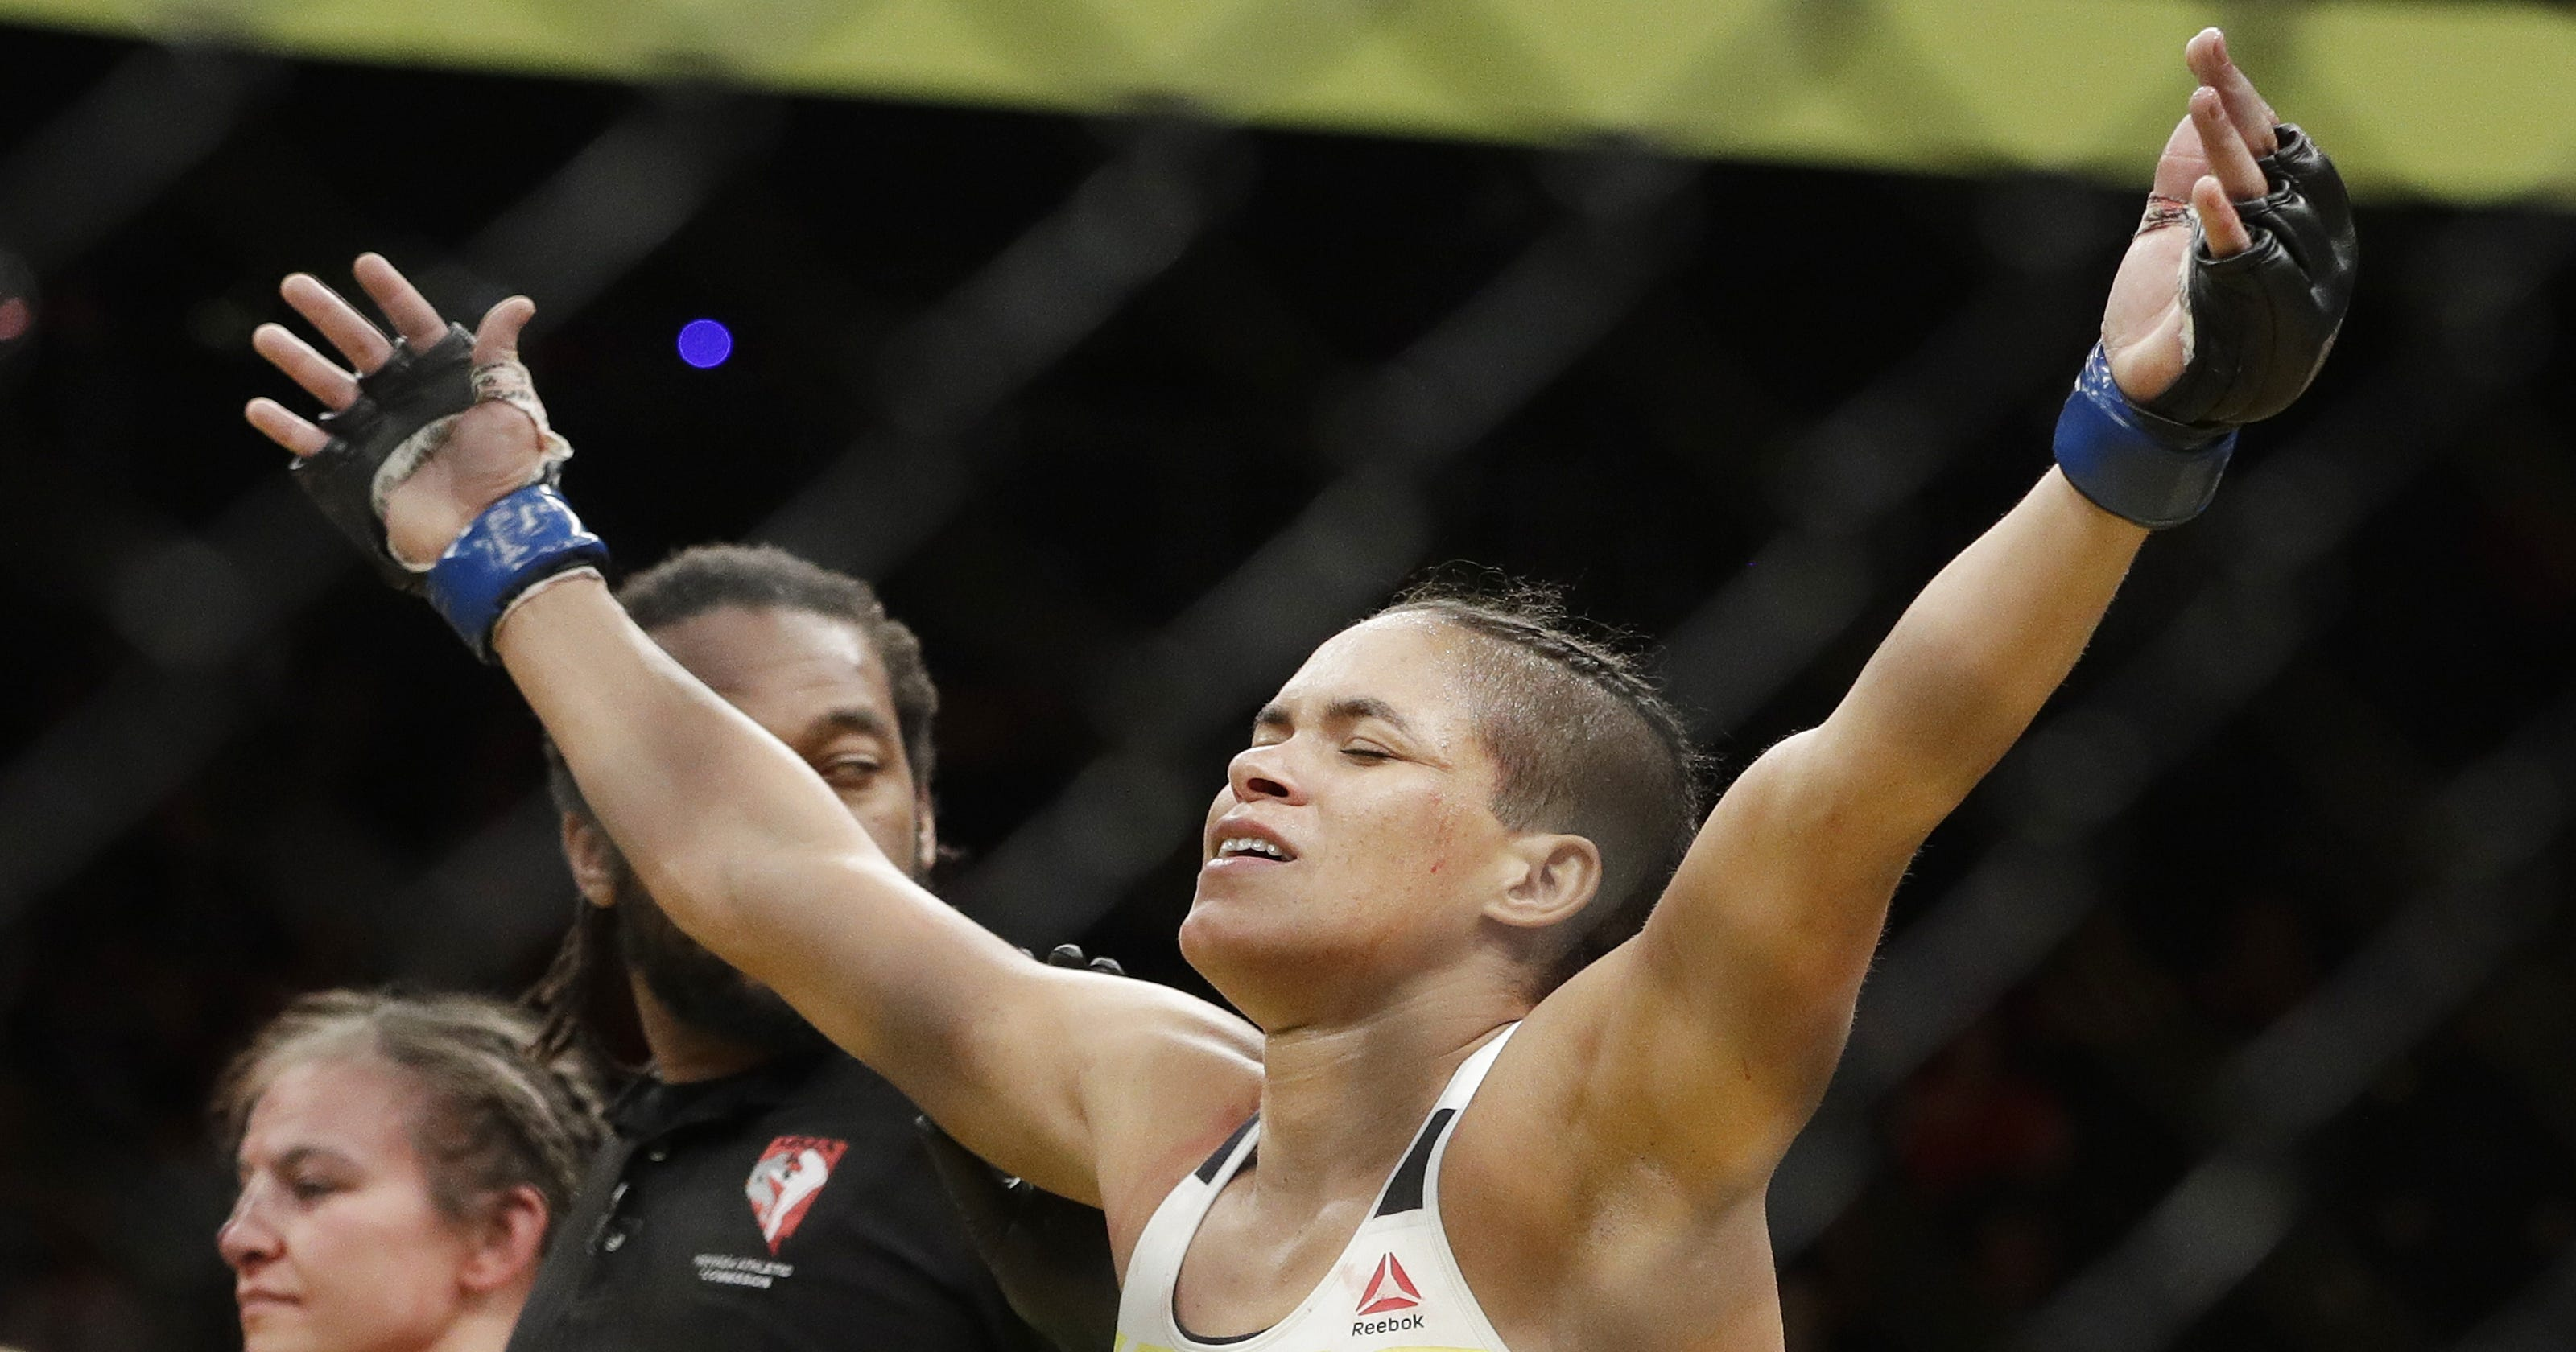 Rogers: Amanda Nunes becomes UFC's newest star as sport's first openly gay  champion